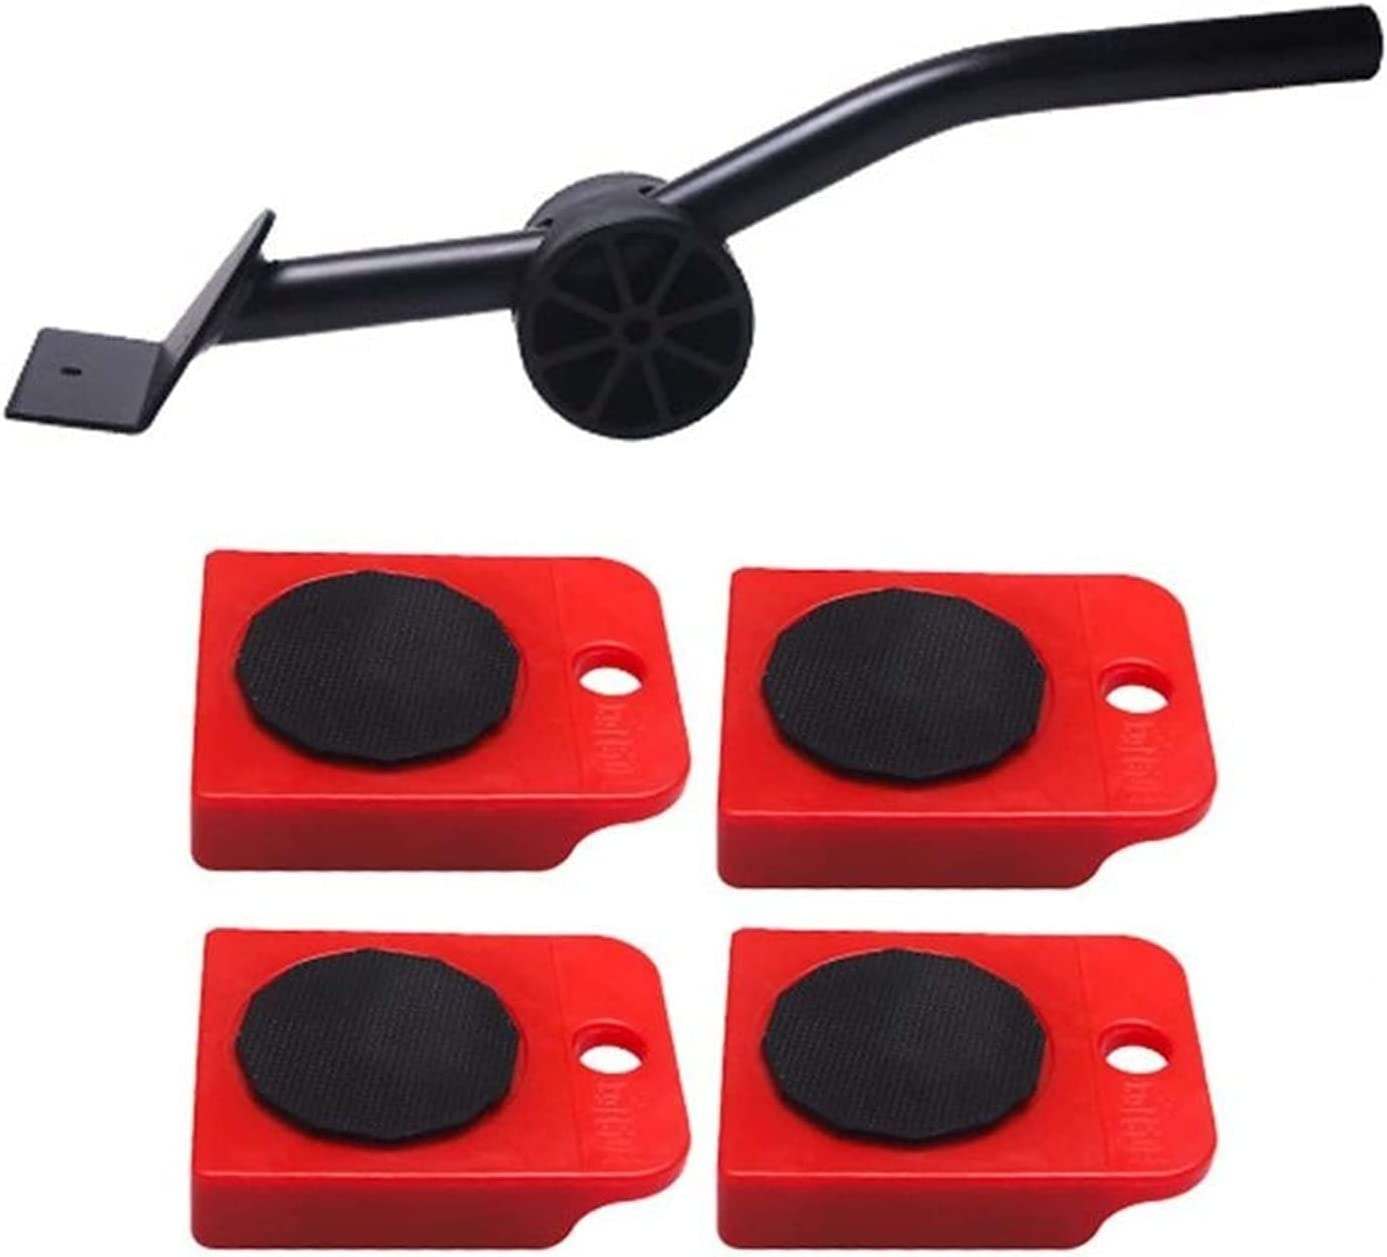 FENGL ZTYSS Furniture Lifter Slider Mover Sales for sale Kit Tra Tool Don't miss the campaign